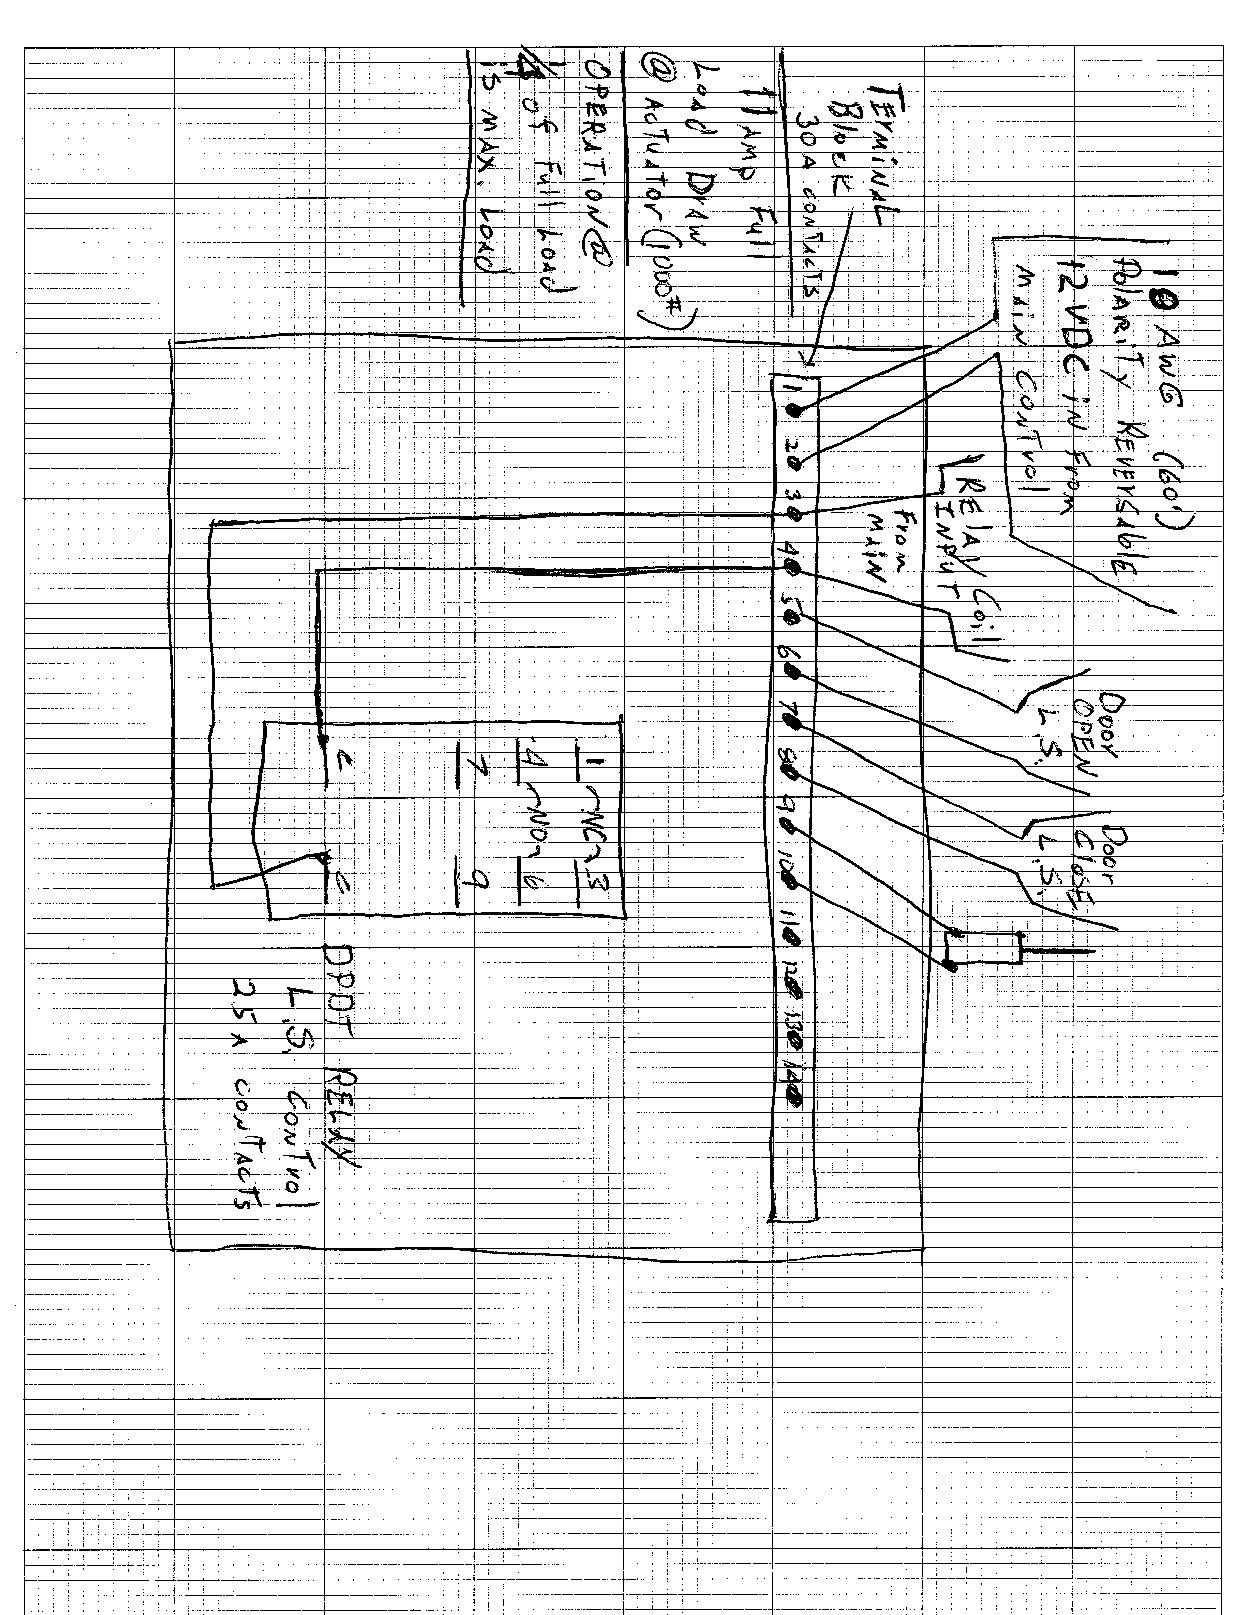 I Need A Wiring Diagram For A 12v Application All Components